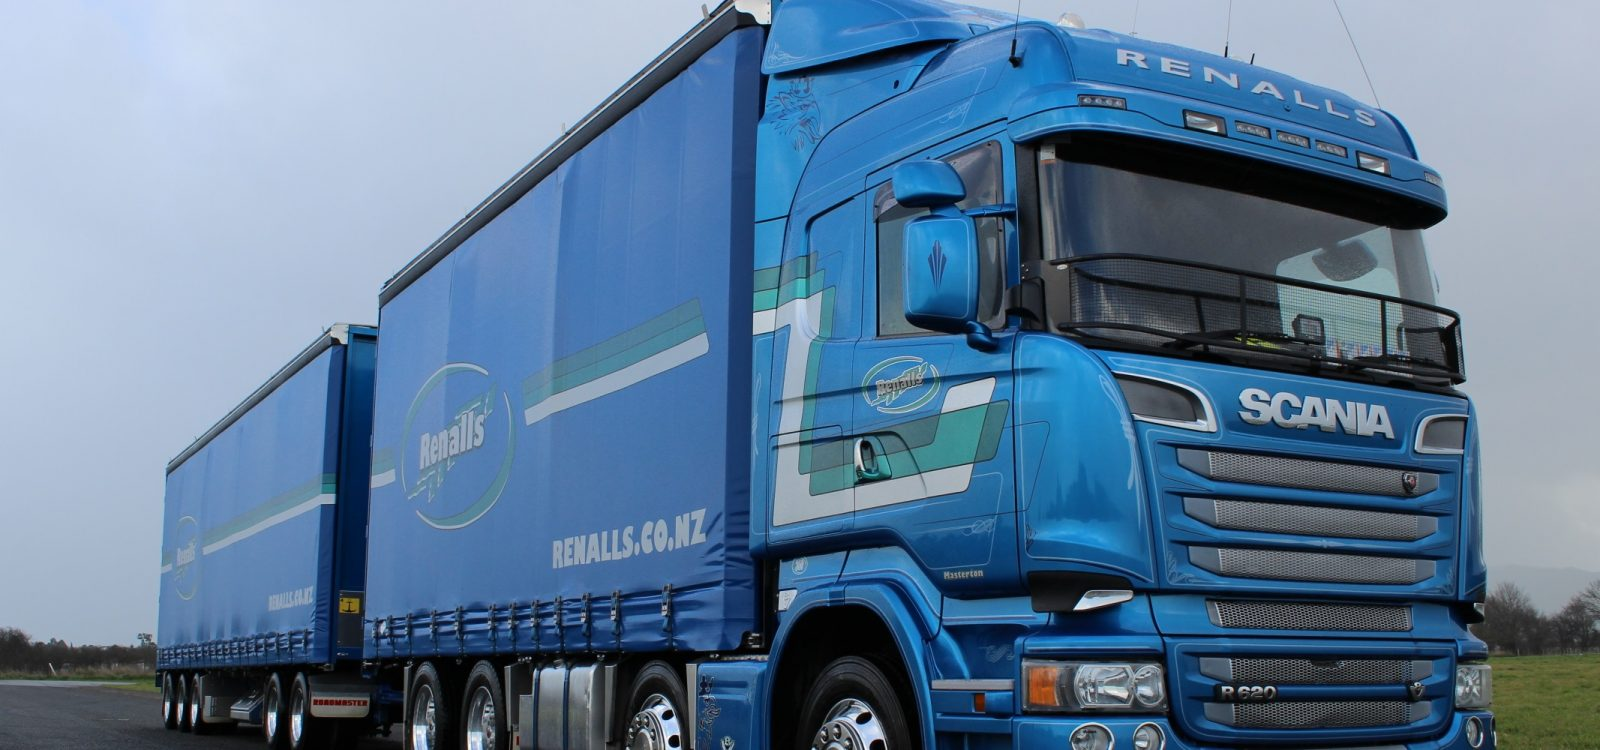 Renalls Masterton |Bulk Transport Solutions New Zealand Wide - Bulk